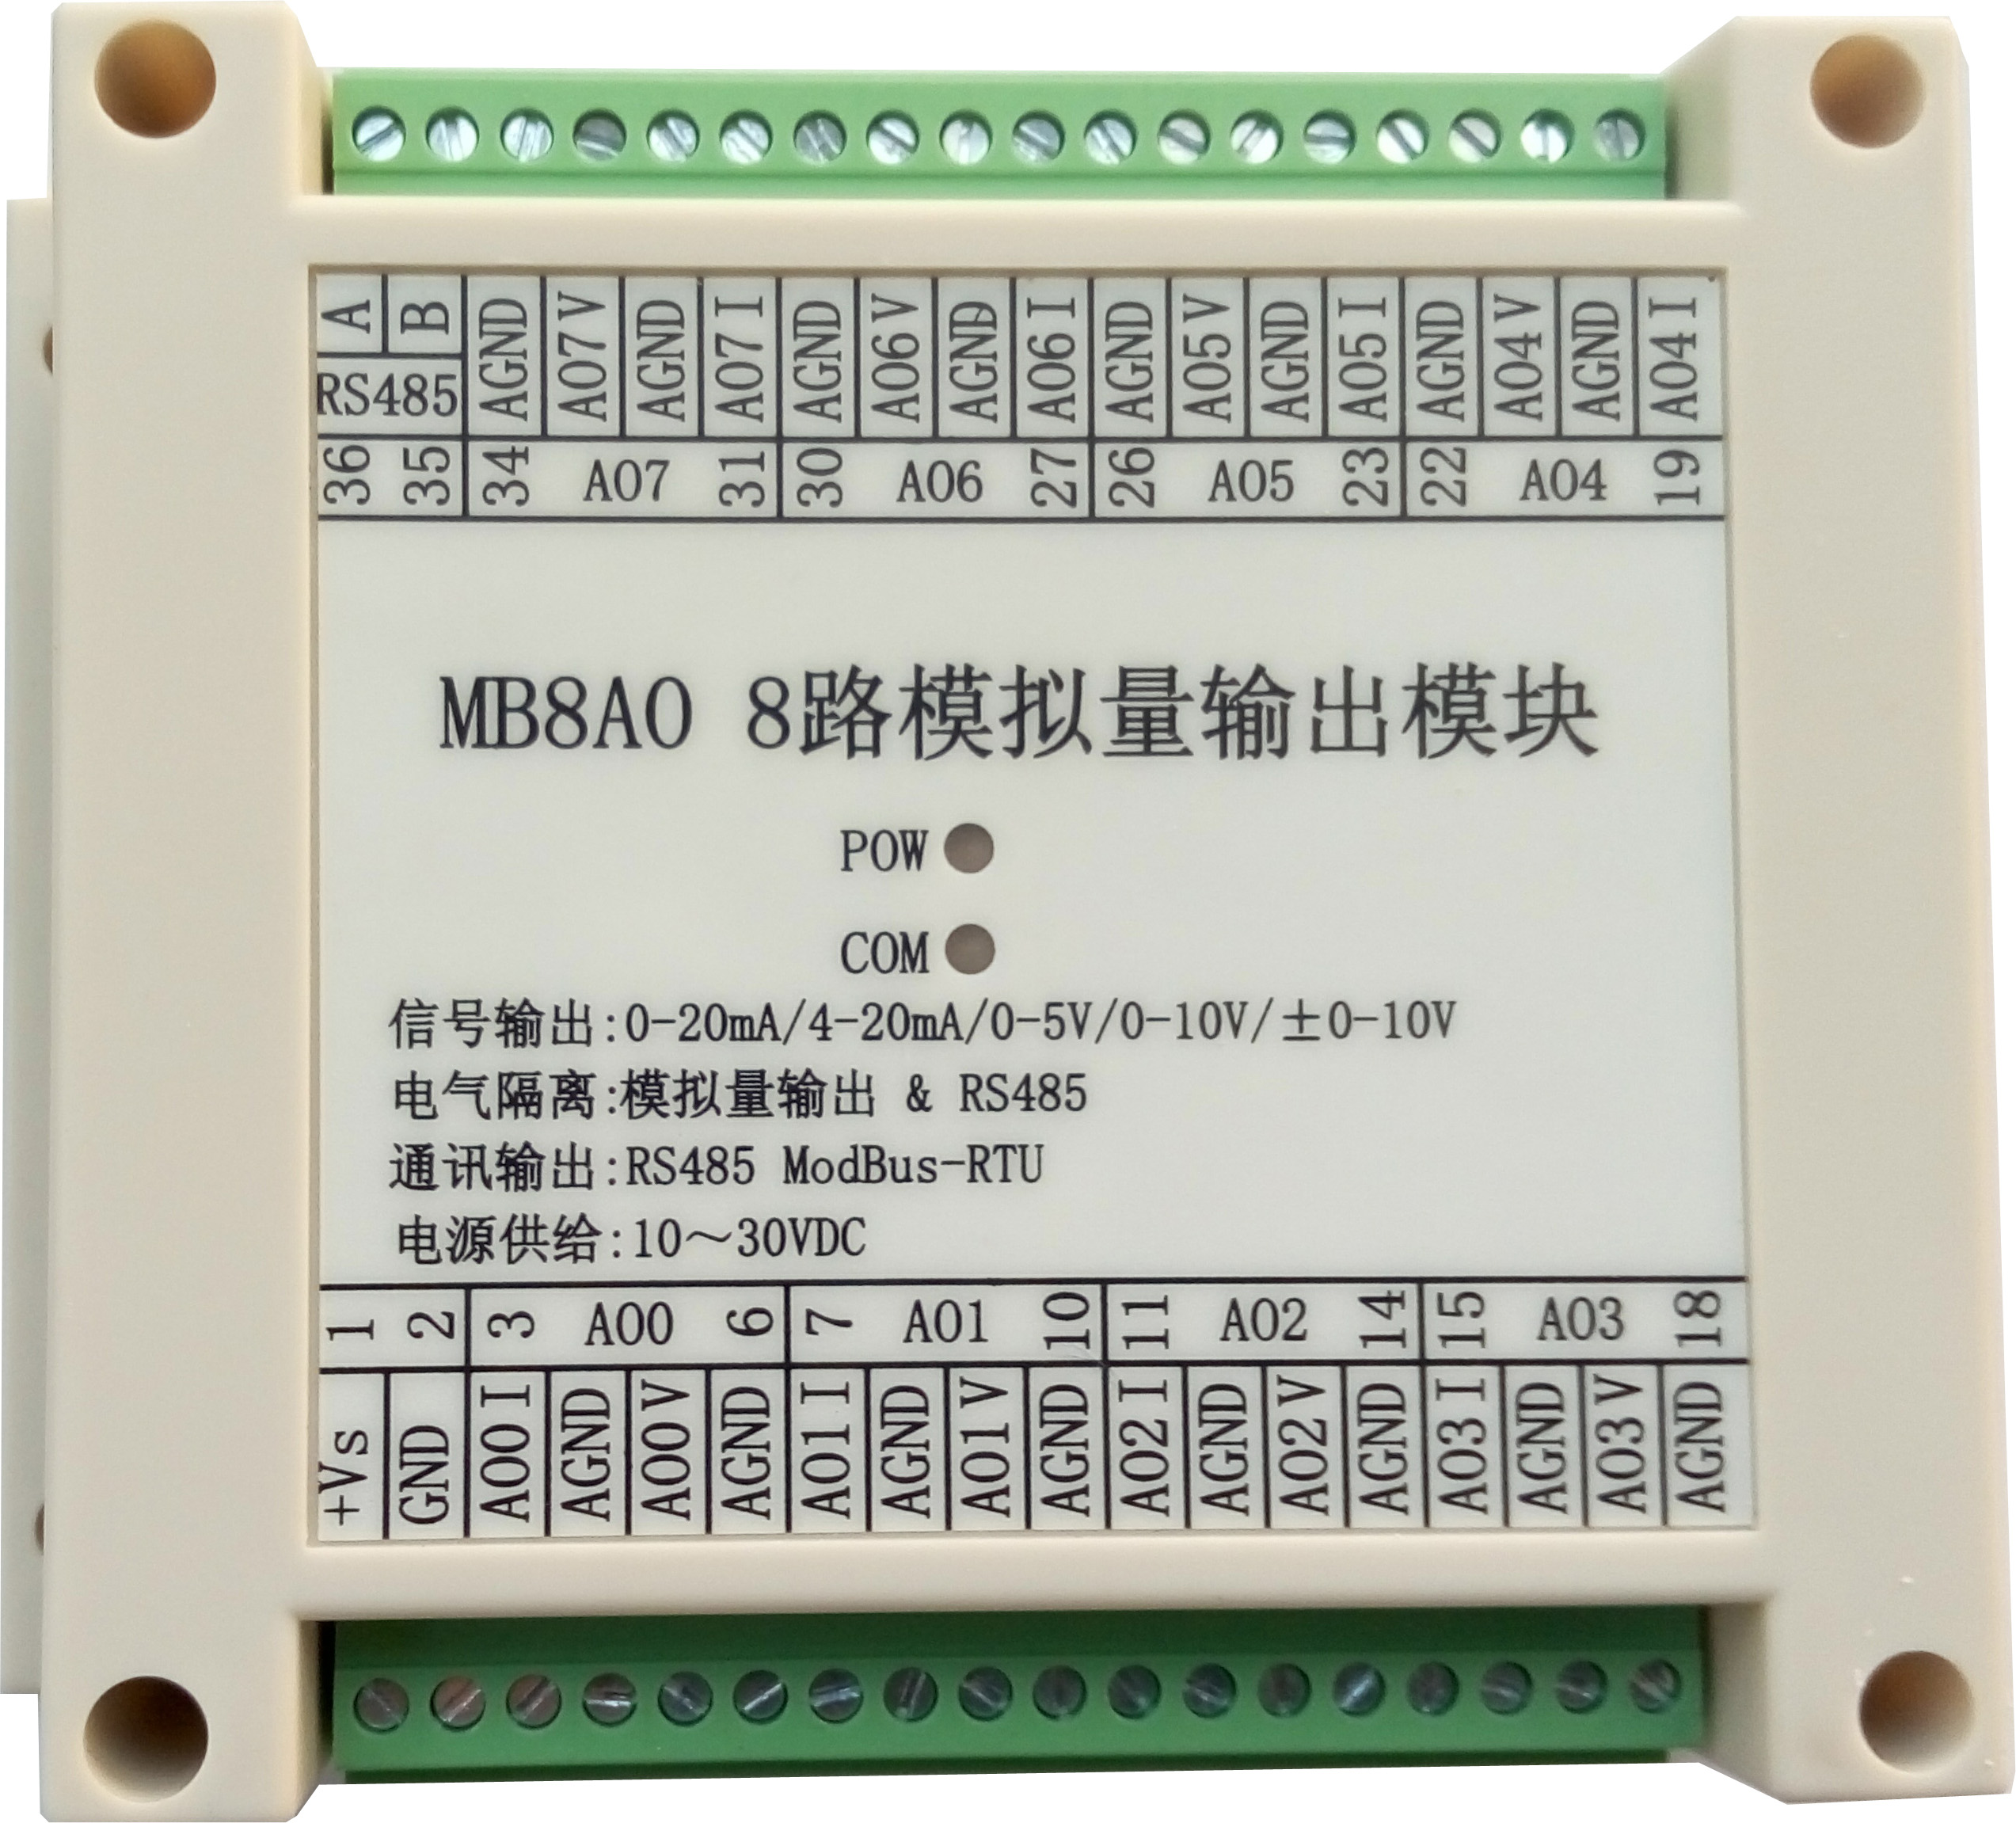 цена на 0-20MA/4-20MA/0-5V/0-10V/ + 10V analog output collection module RS485 MODBUS